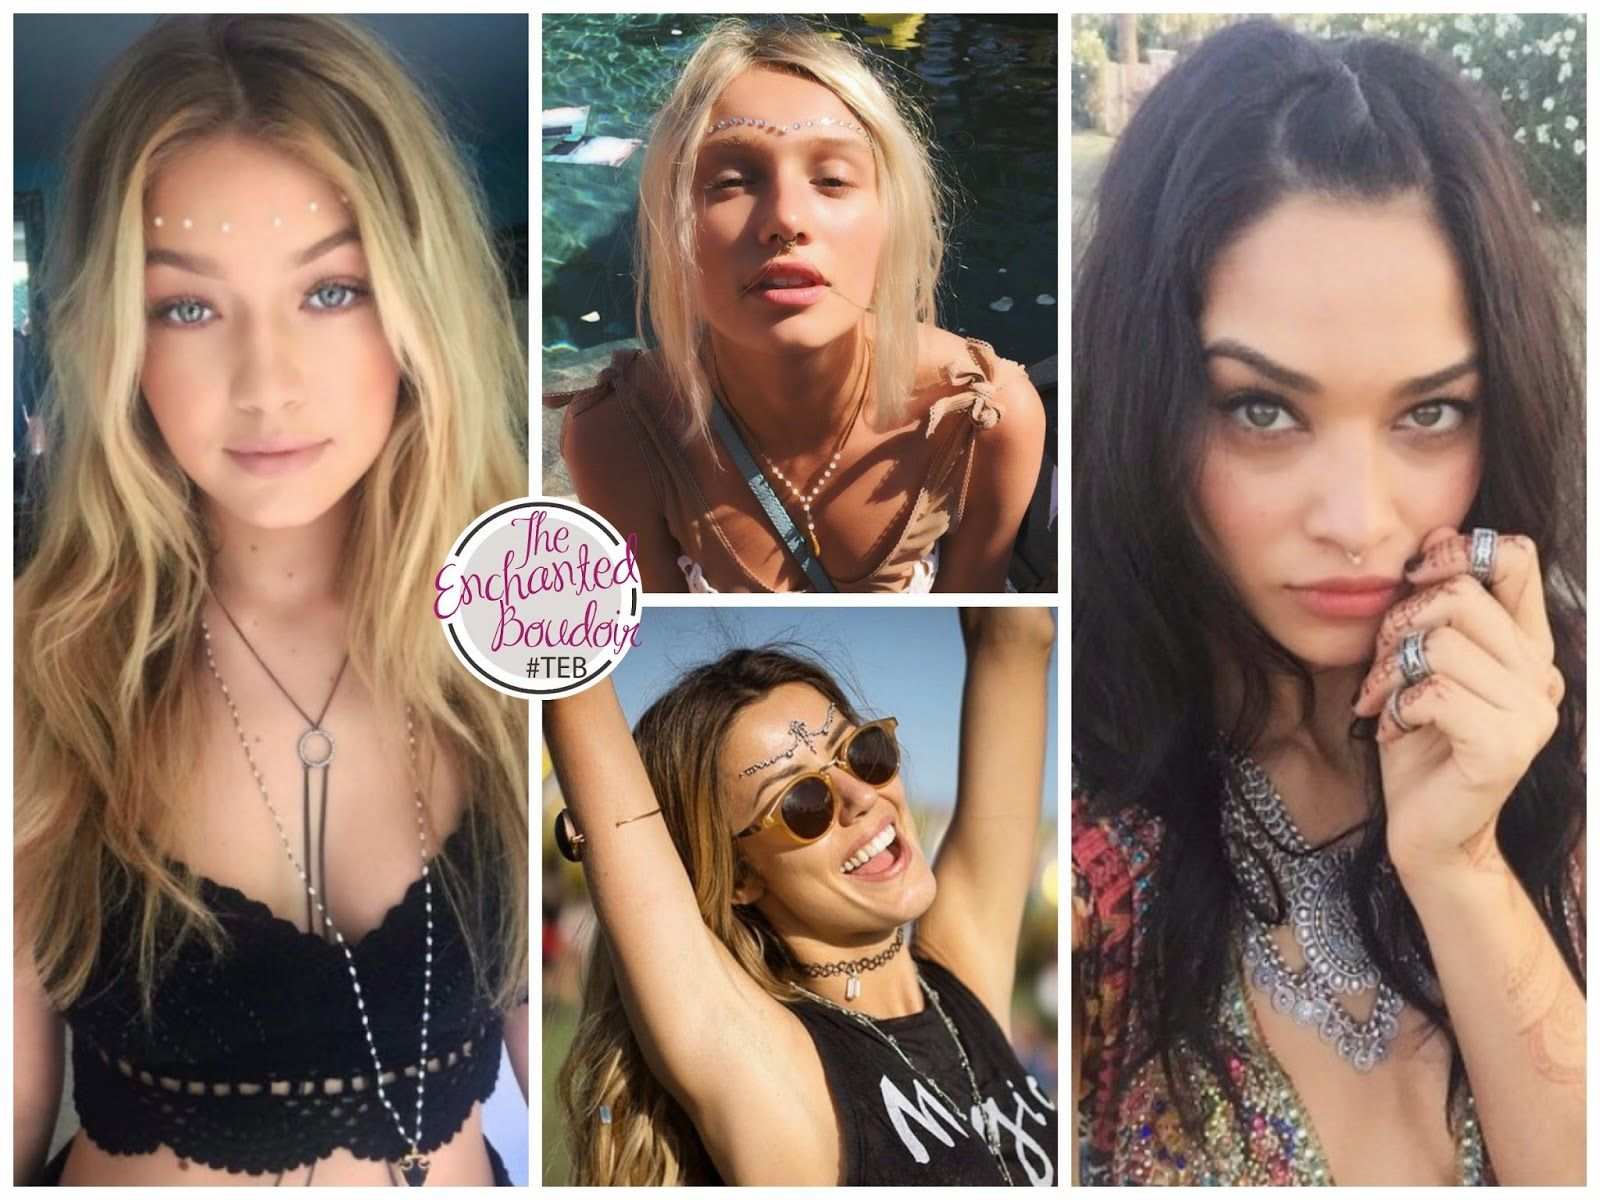 2015 COACHELLA FESTIVAL : As we expected, the trends were tiny cutoffs, crop tops, fringes, prints, dyed hair, etc... Models had fun with face jewelry.